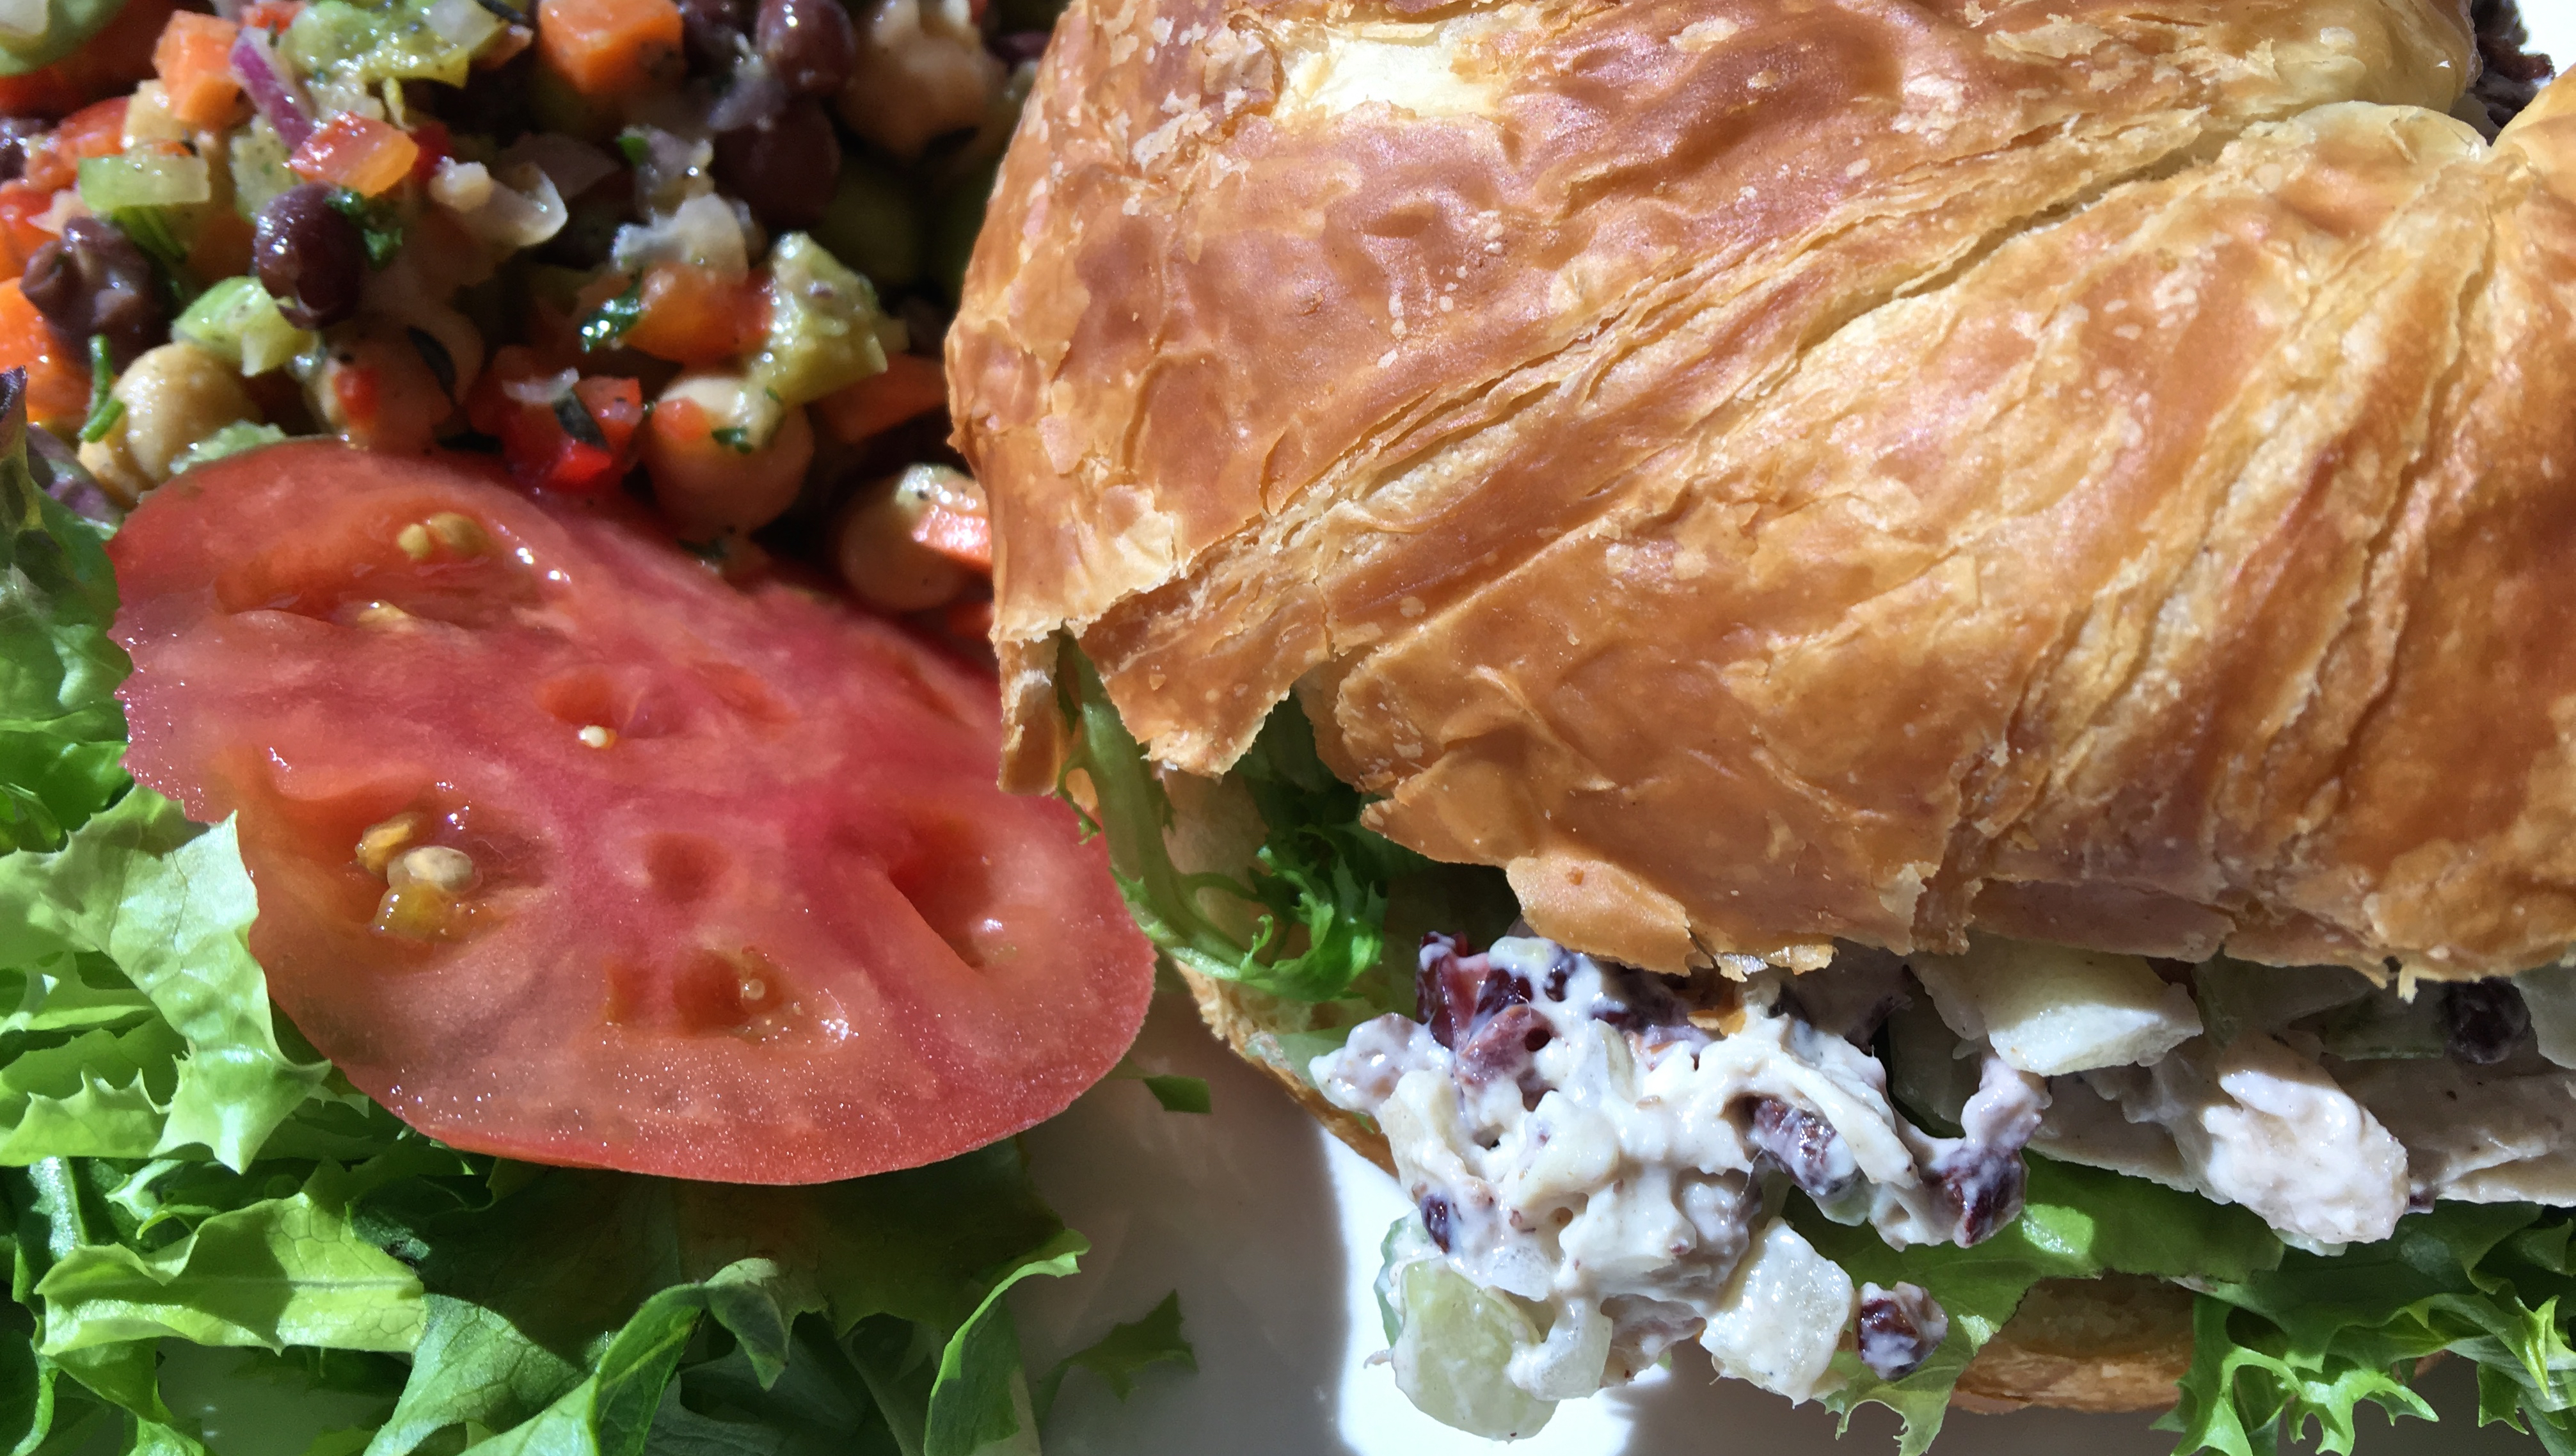 Autumn Harvest Chicken Salad on House-made Croissant, with Three Bean Salad, from the Oct. 20 Café lunch menu.